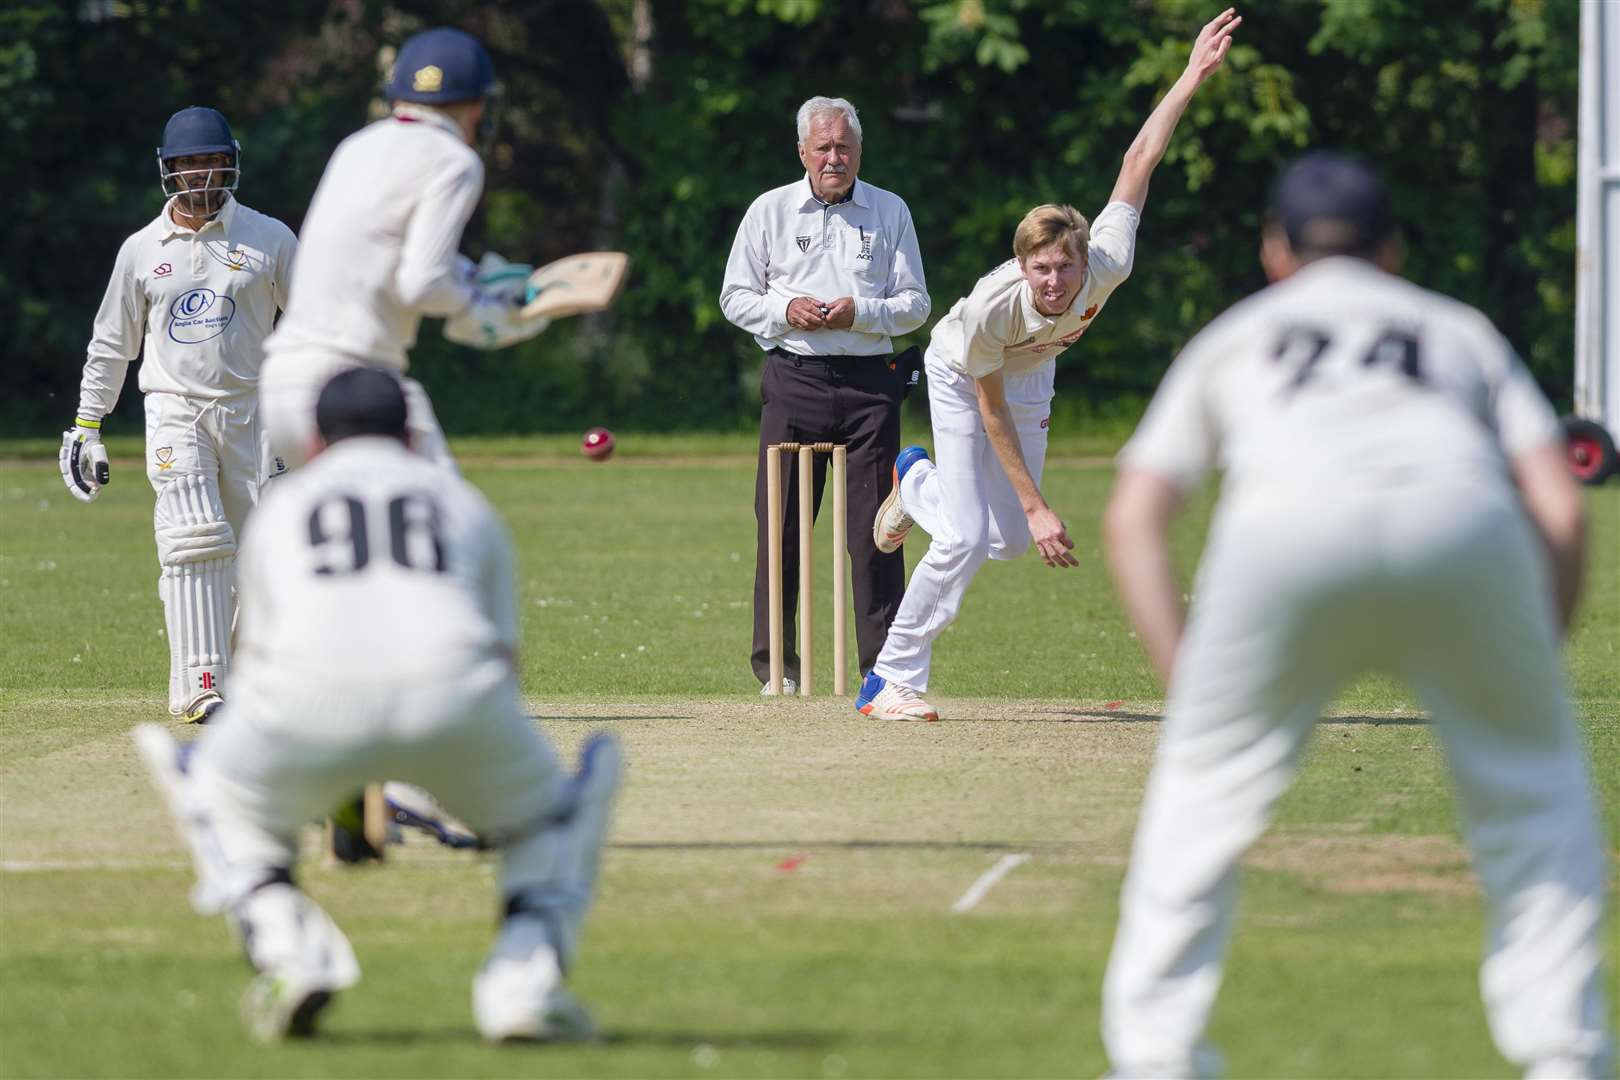 Diss, Norfolk. Cricket action from Diss vs Stow - Diss Bowling - Eli Meenhorst...Picture: Mark Bullimore Photography. (2239315)